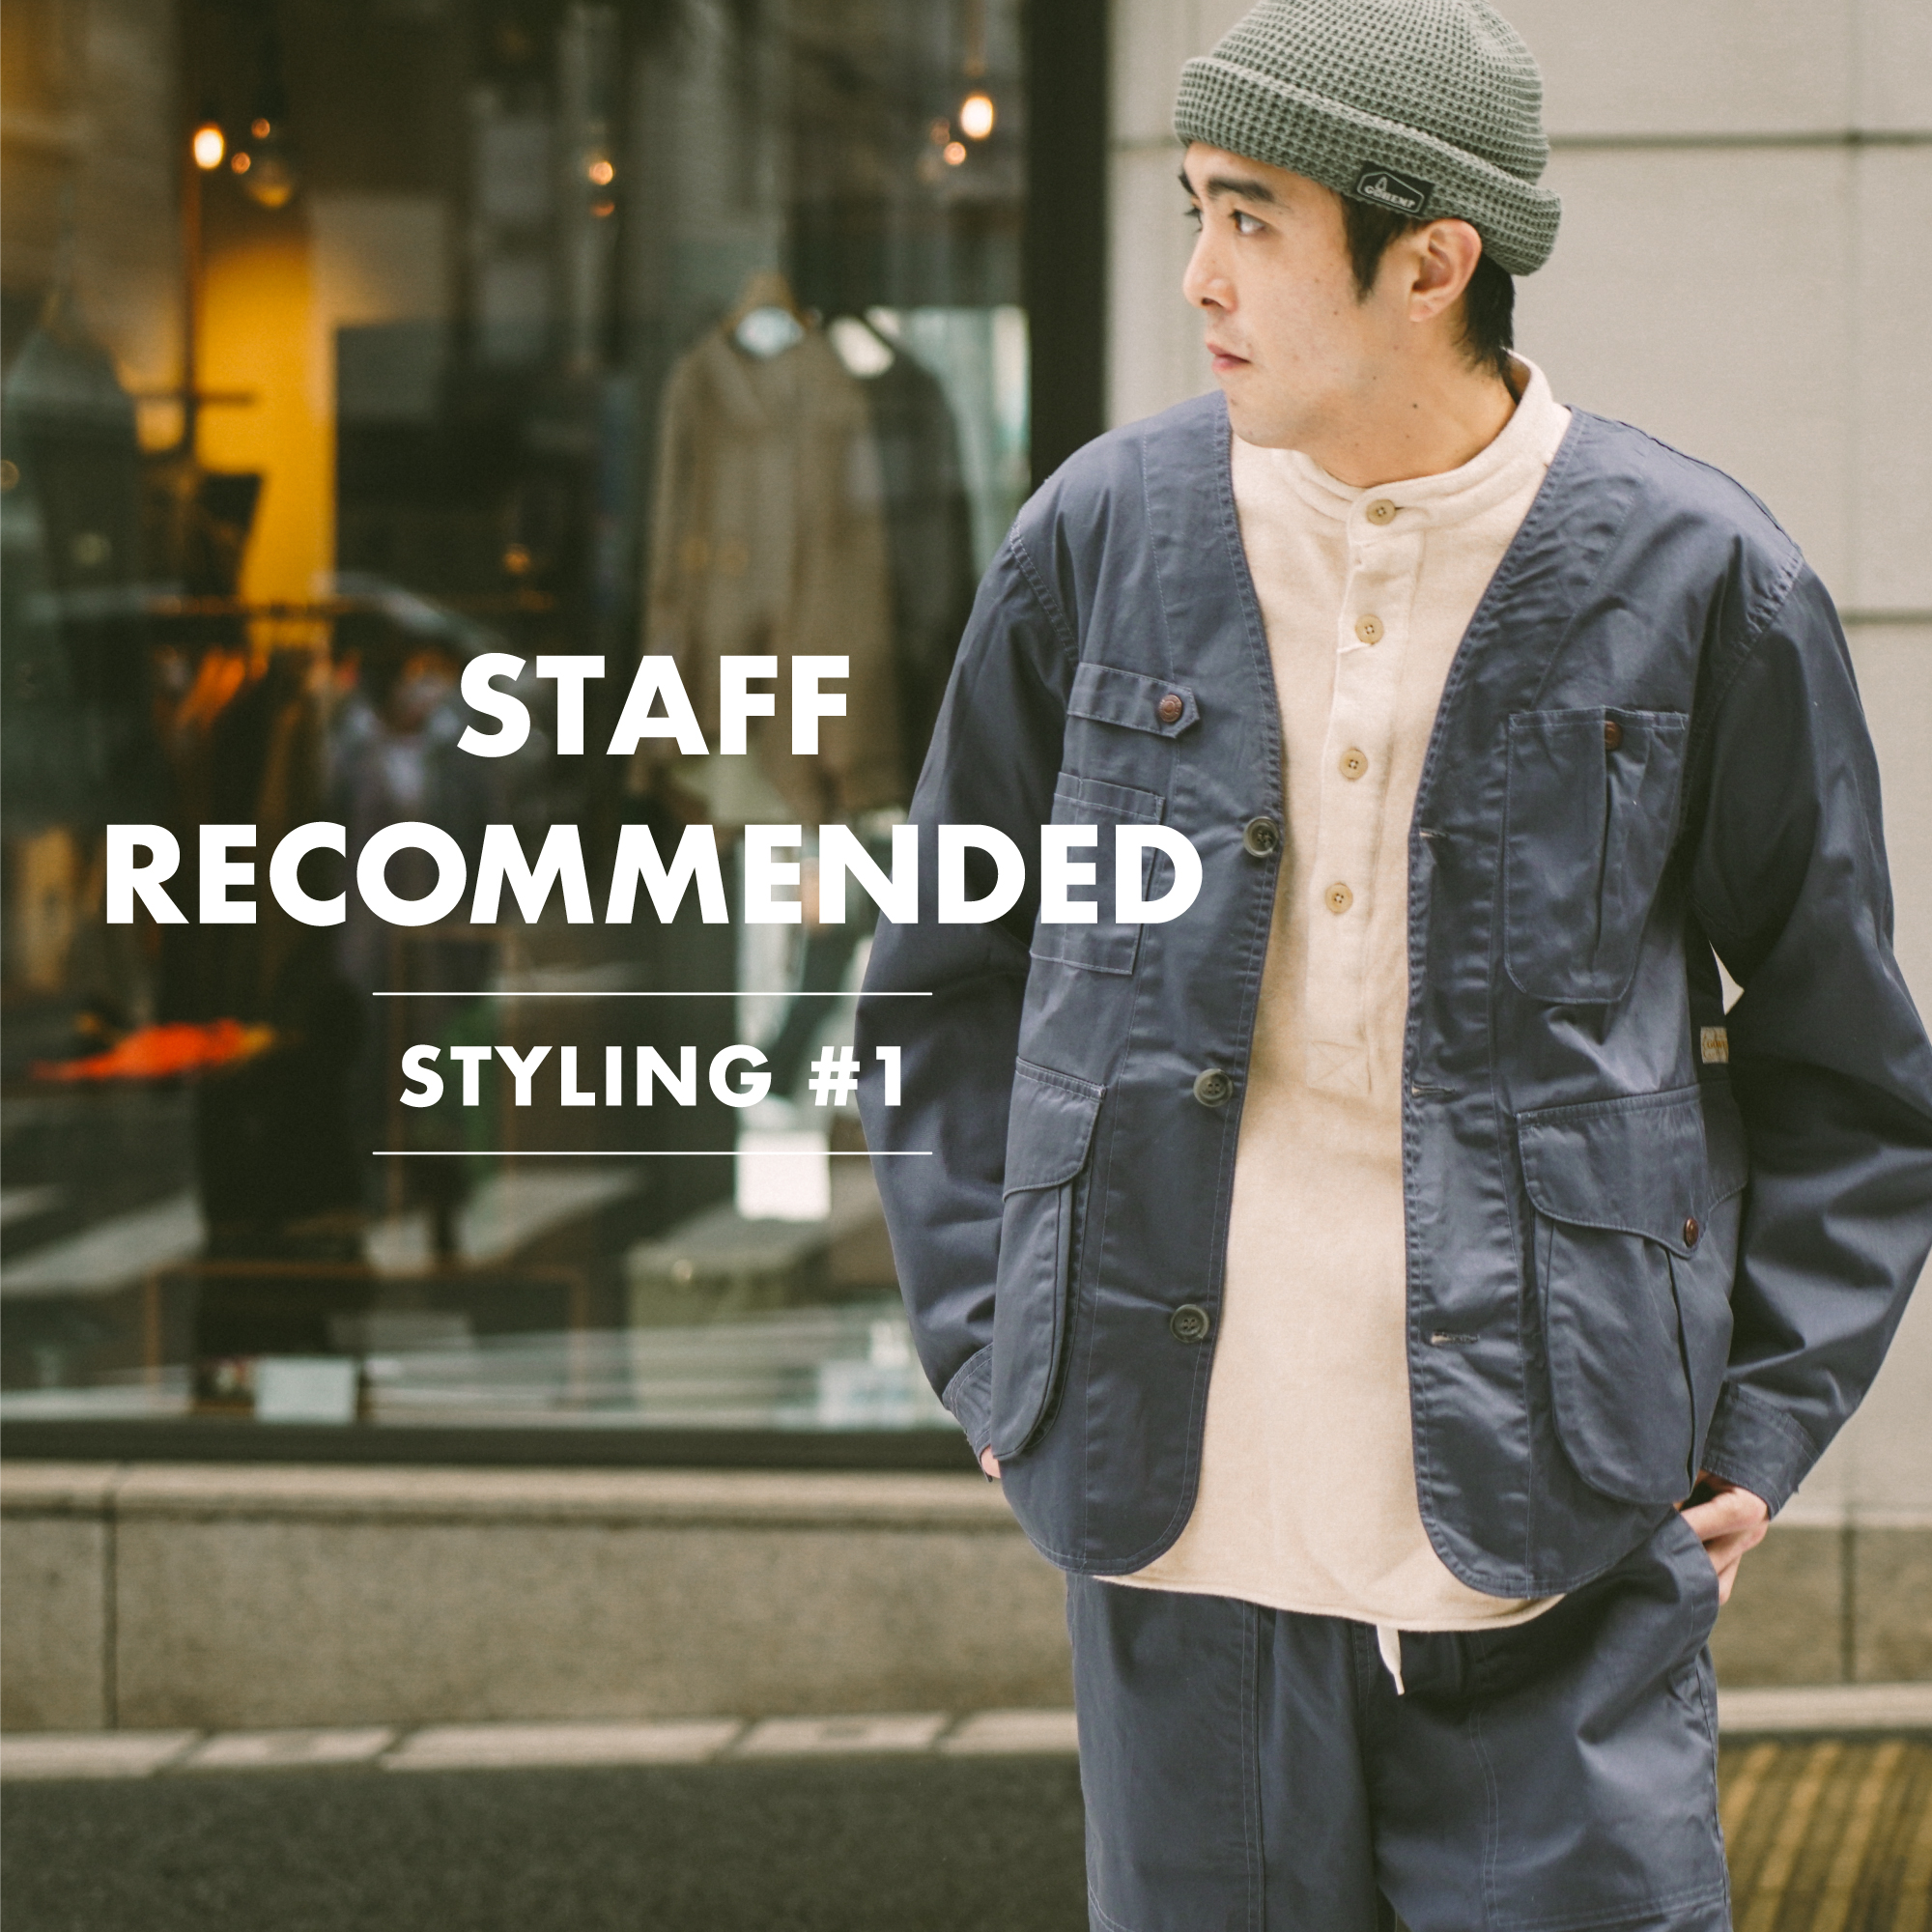 STAFF RECOMMENDED STYLING #1